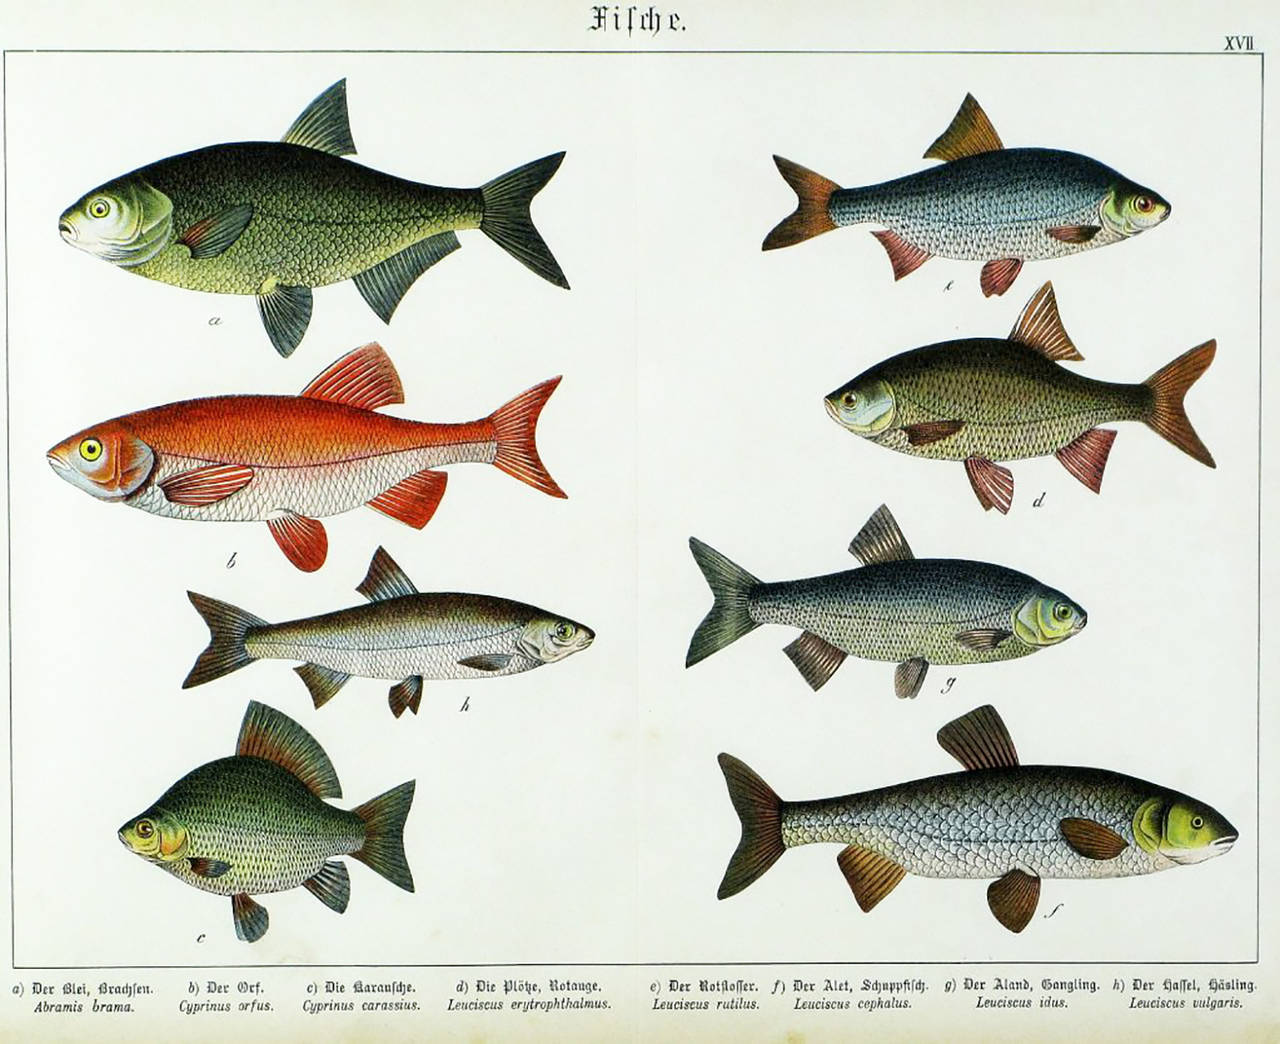 Glass Colorful Trio 1880 Schubert German Lithographs of Aquatic Life For Sale